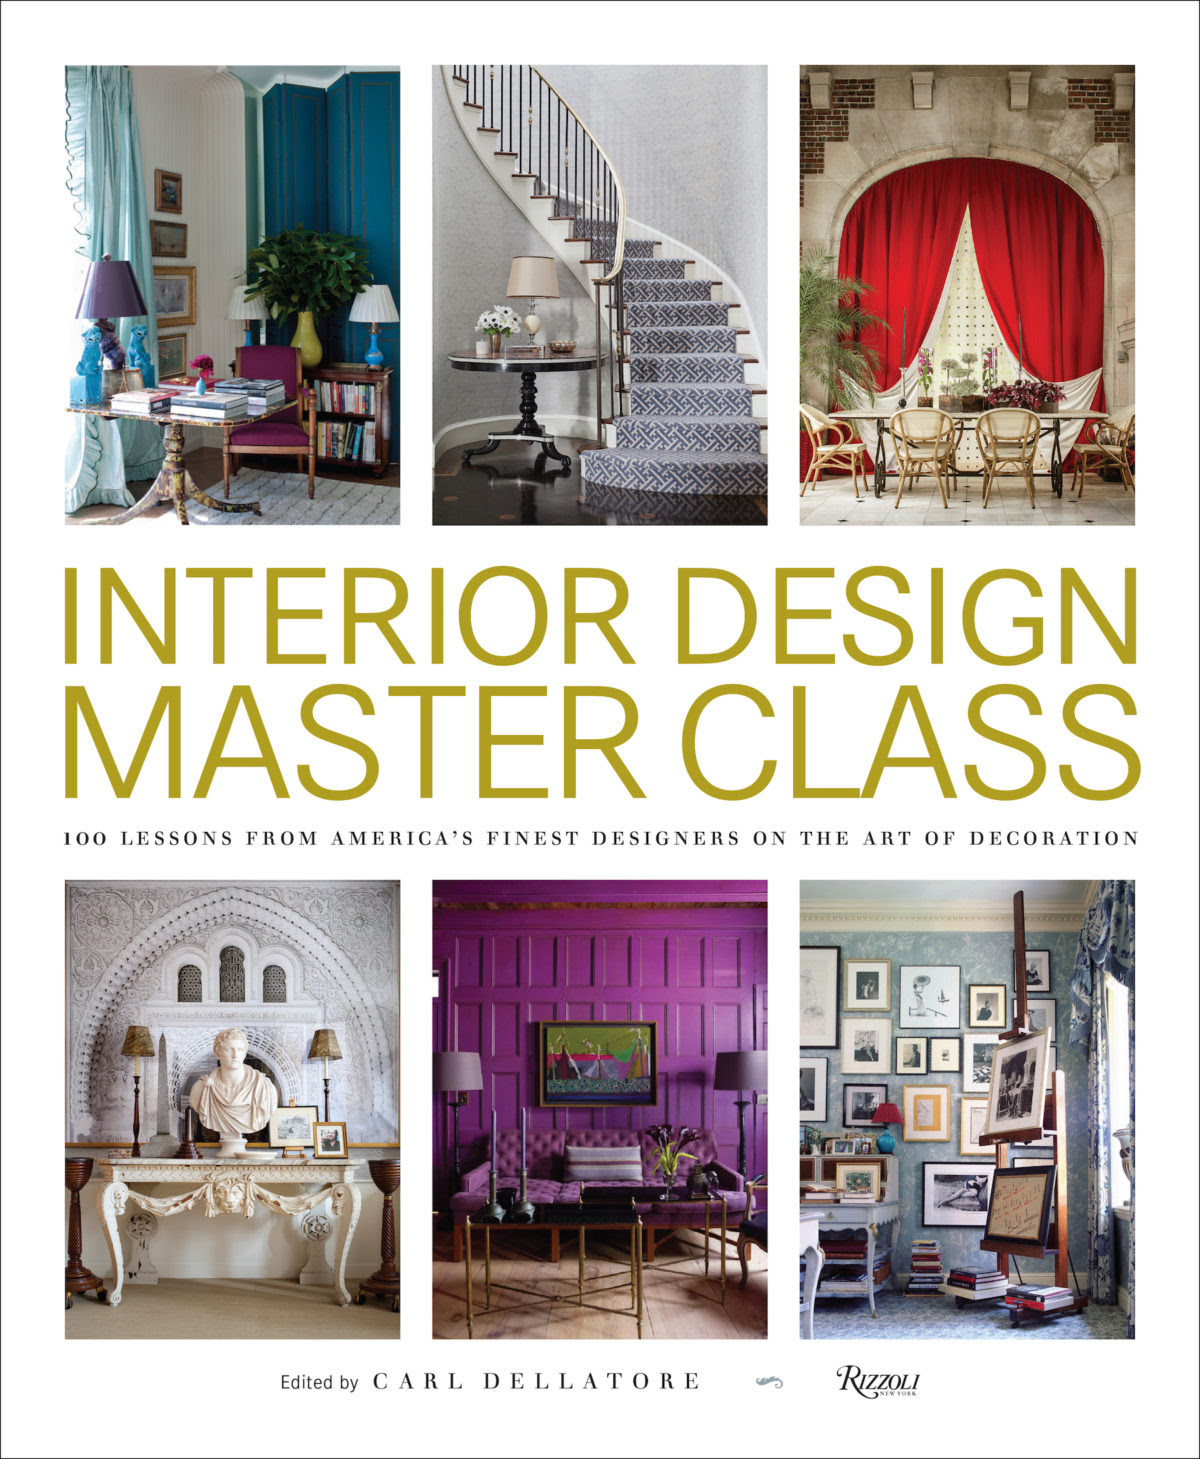 Interior Design Master Class The Book Interior Design Master Class